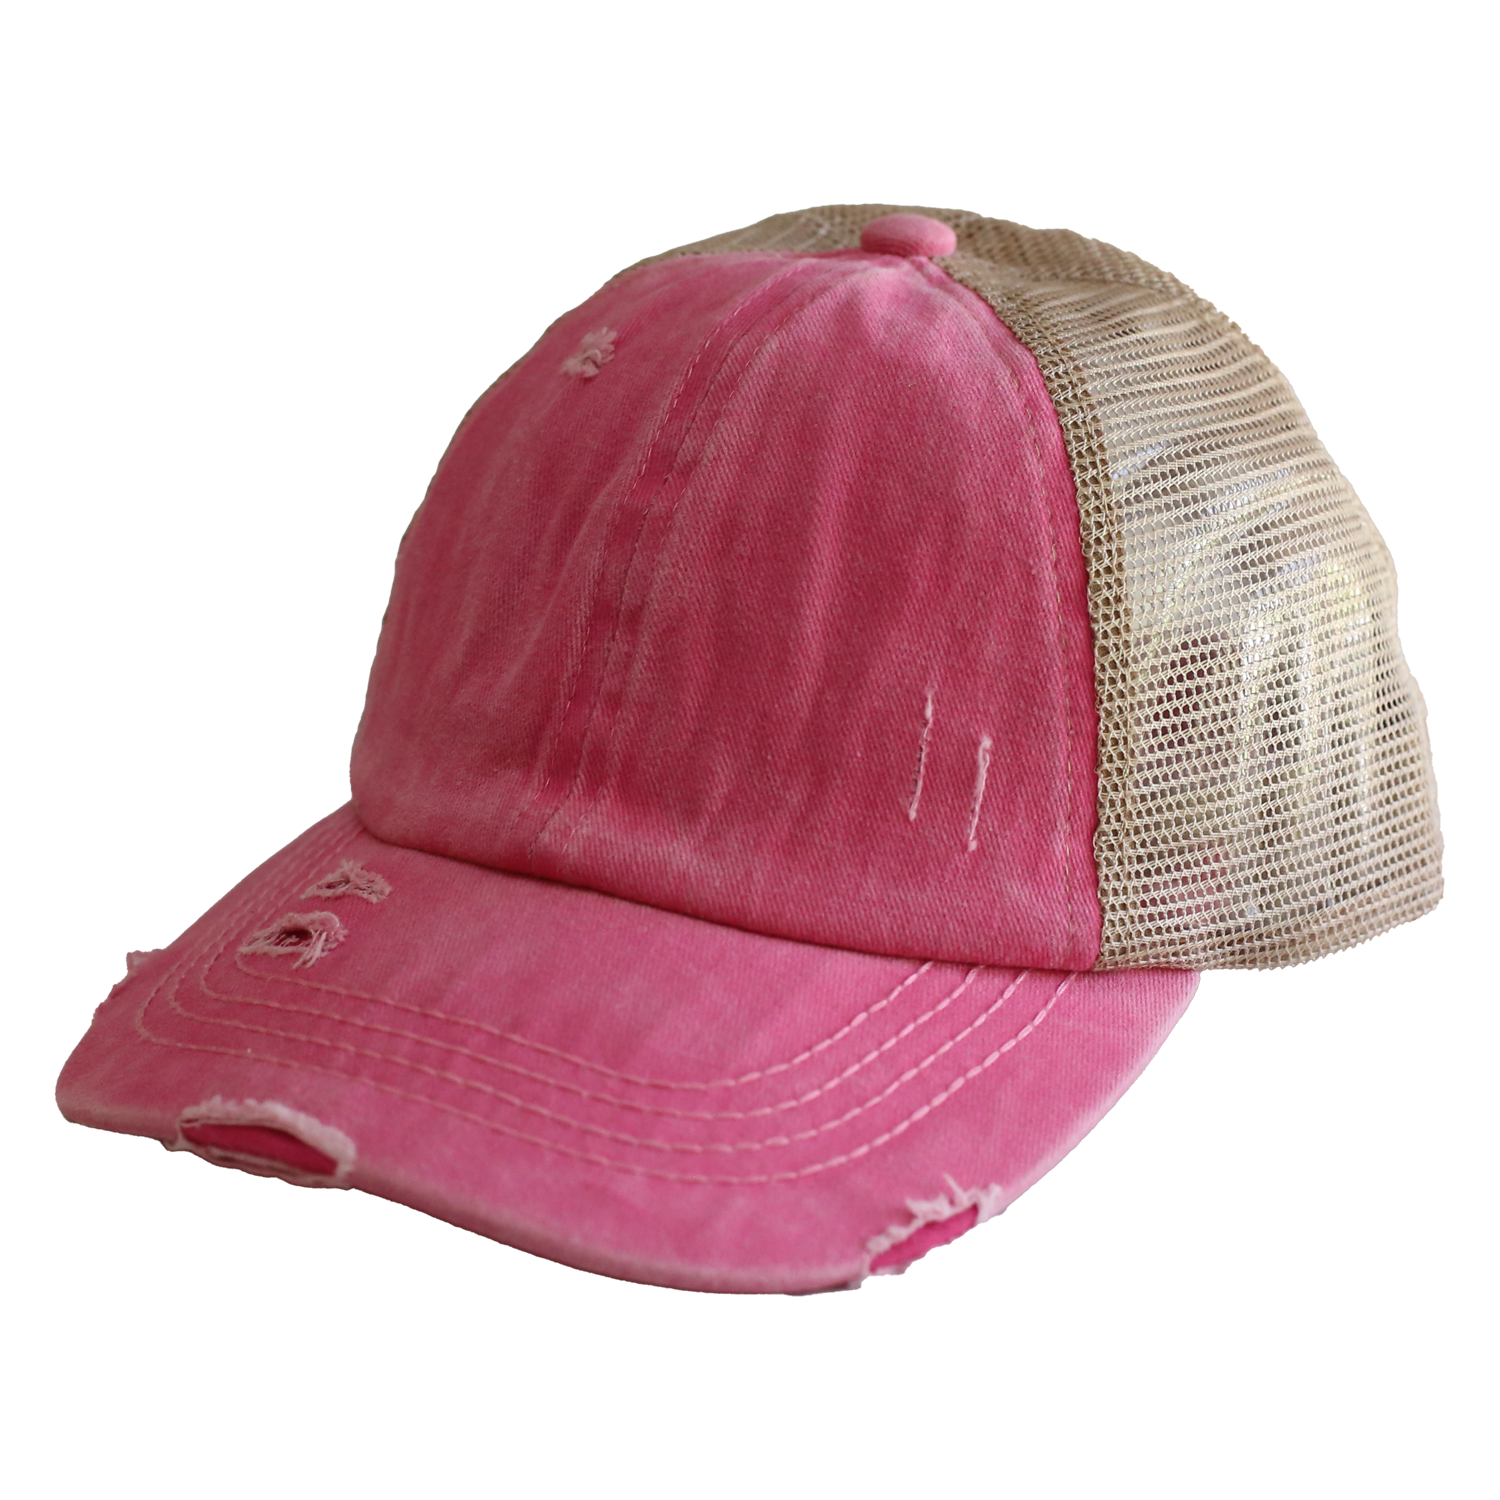 BT-780 C.C Criss Cross Pony Cap PINK/BEIGE